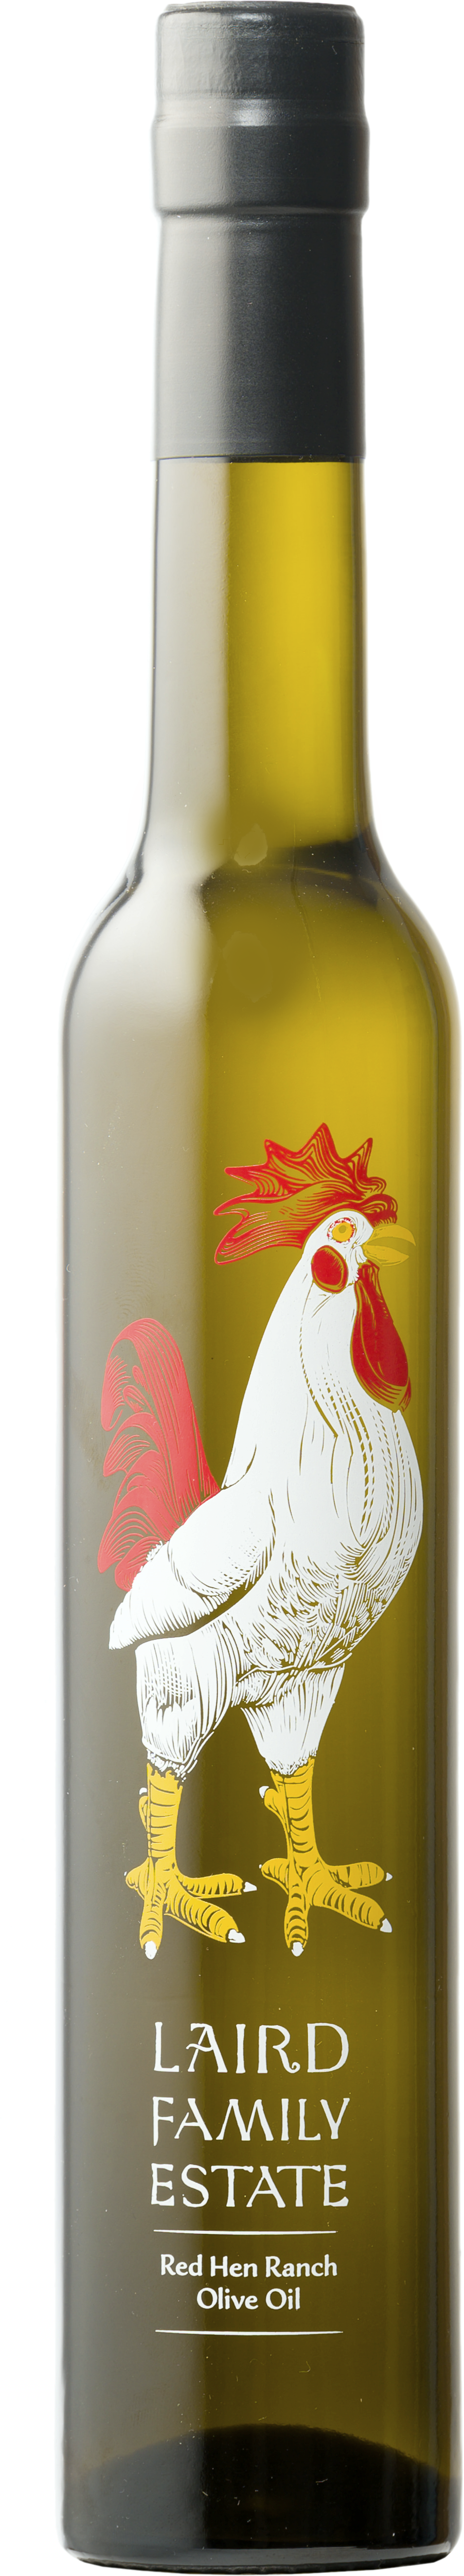 Product Image for Big Reds Olive Oil